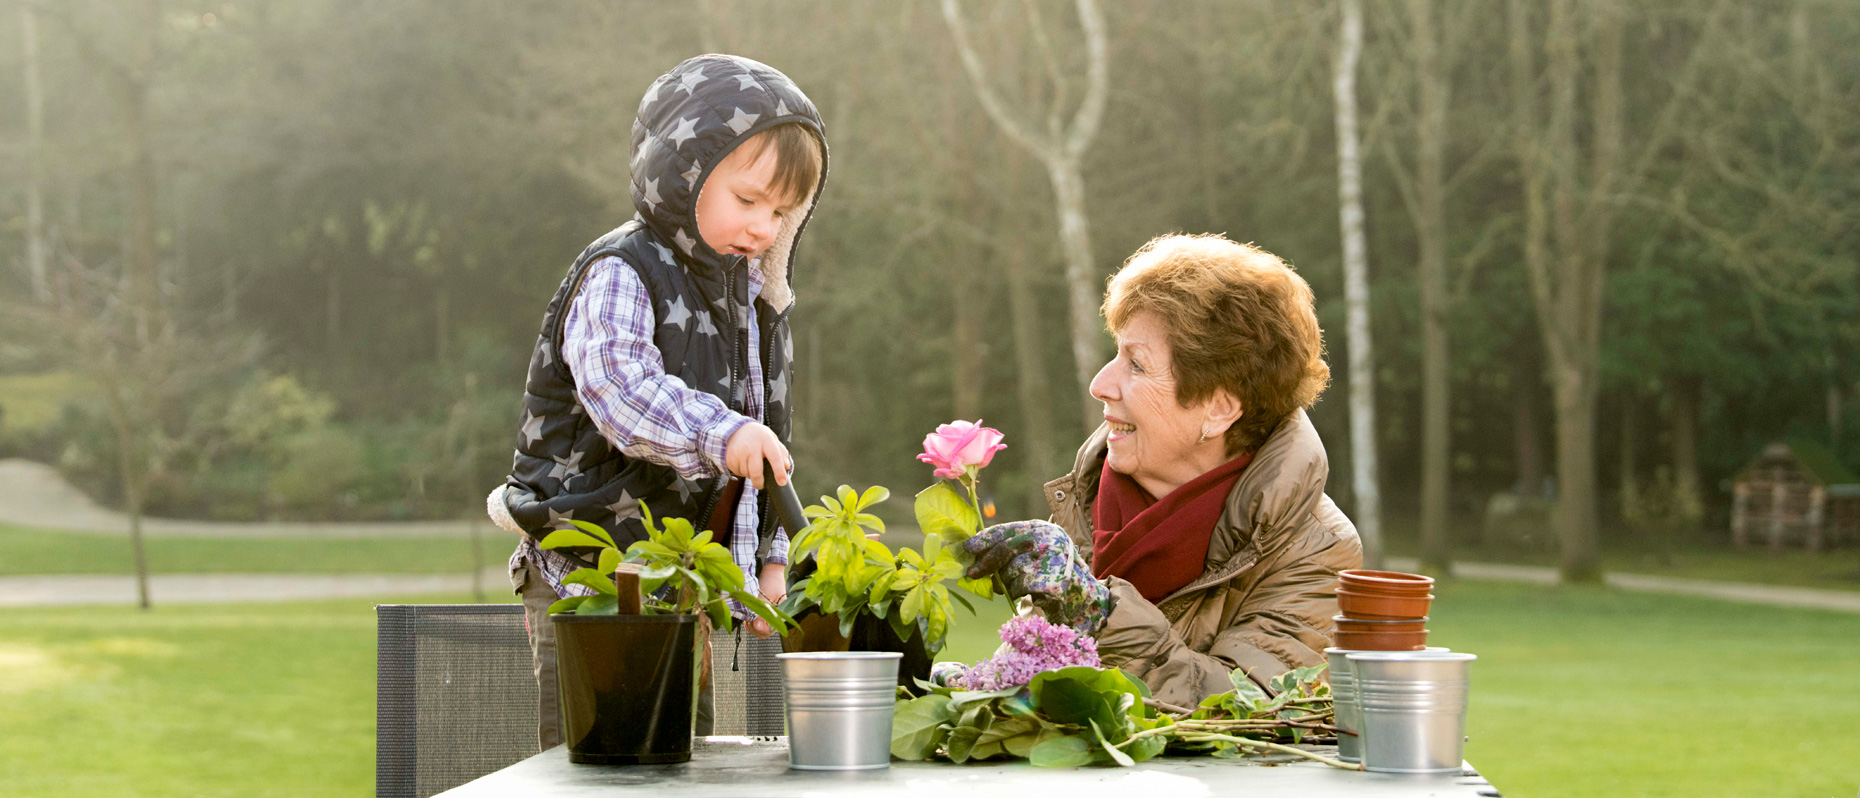 grandma and child playing together with flowers